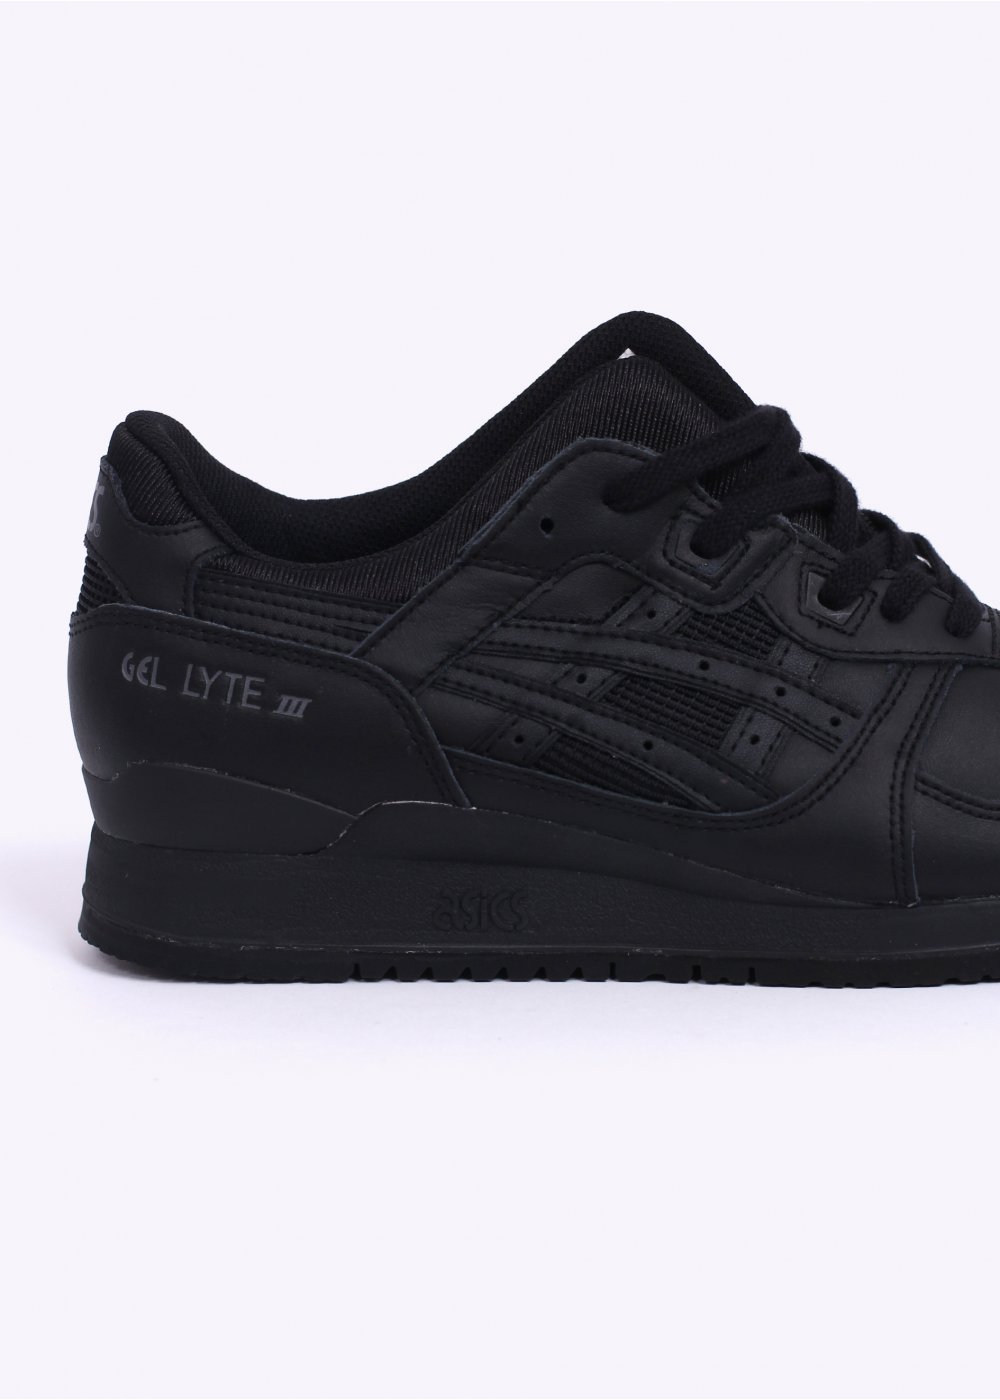 finest selection d26f1 5557a Gel Lyte III Trainers - All Black